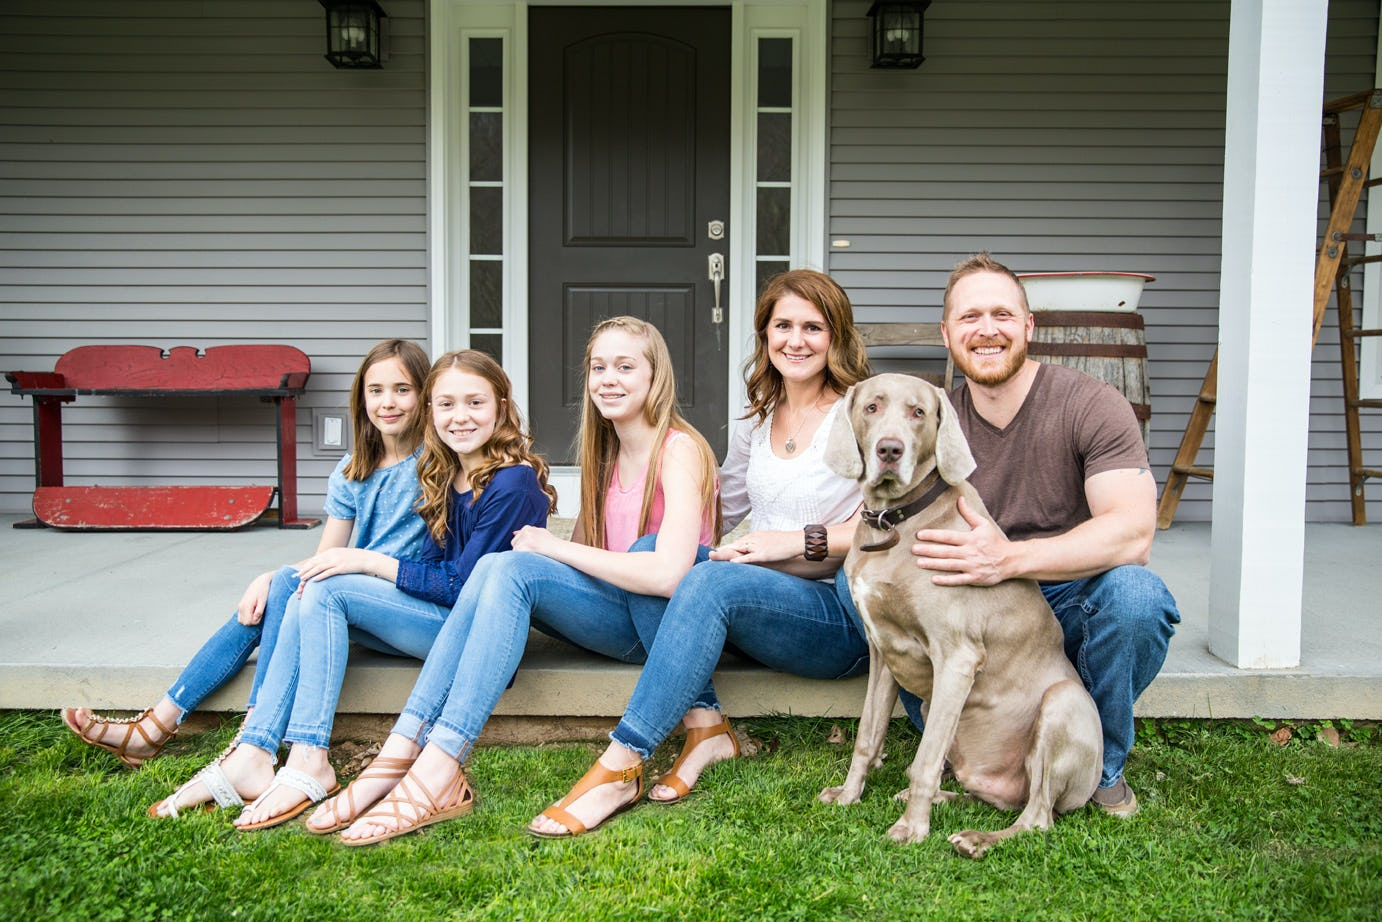 The Morgans, Customer Testimonial, photo of family on a porch with their dog.